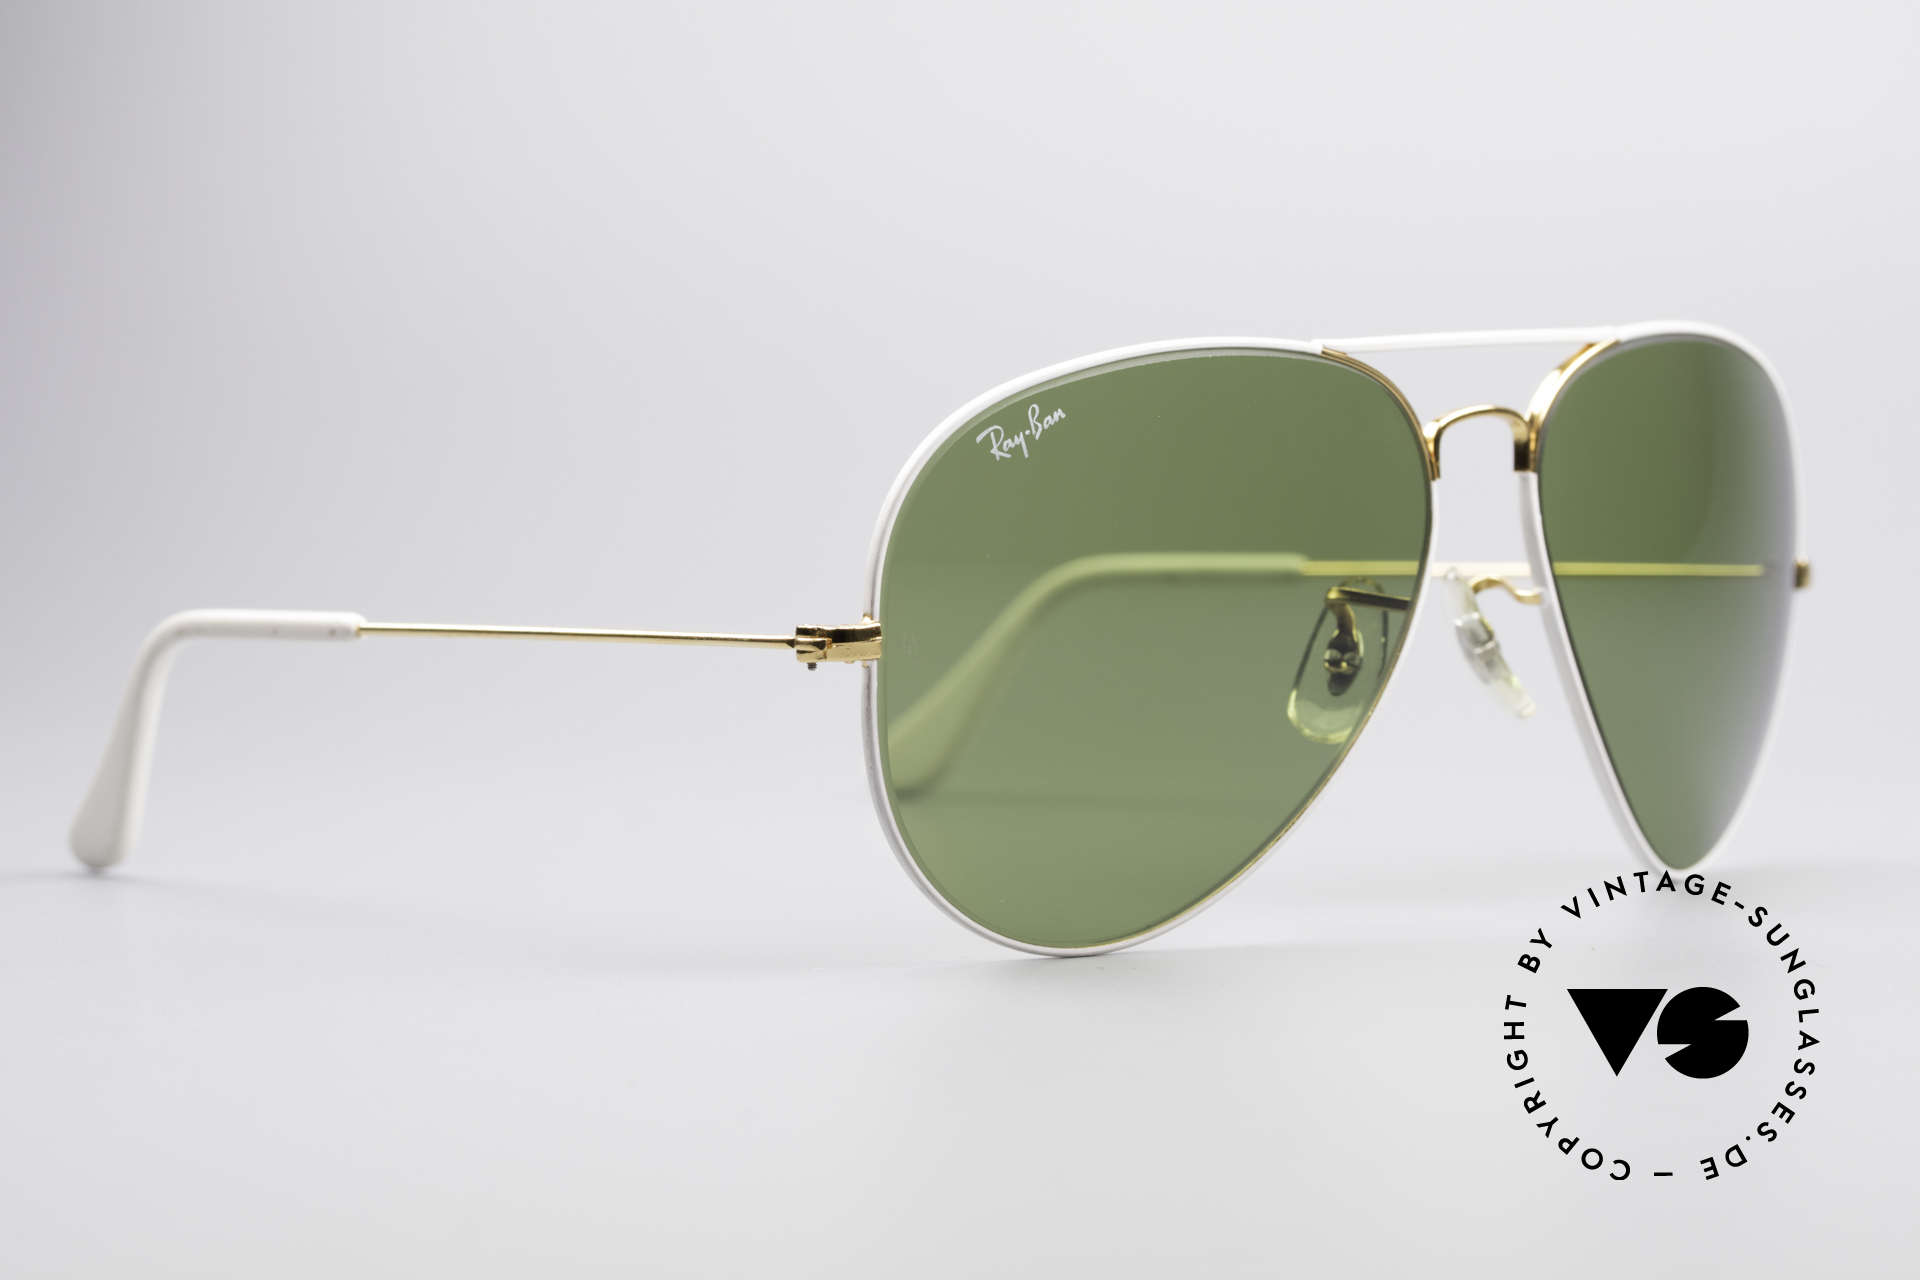 Ray Ban Large Metal II Flying Colors Limited Edition, made in the 1970's and 1980's by Bausch&Lomb, USA, Made for Men